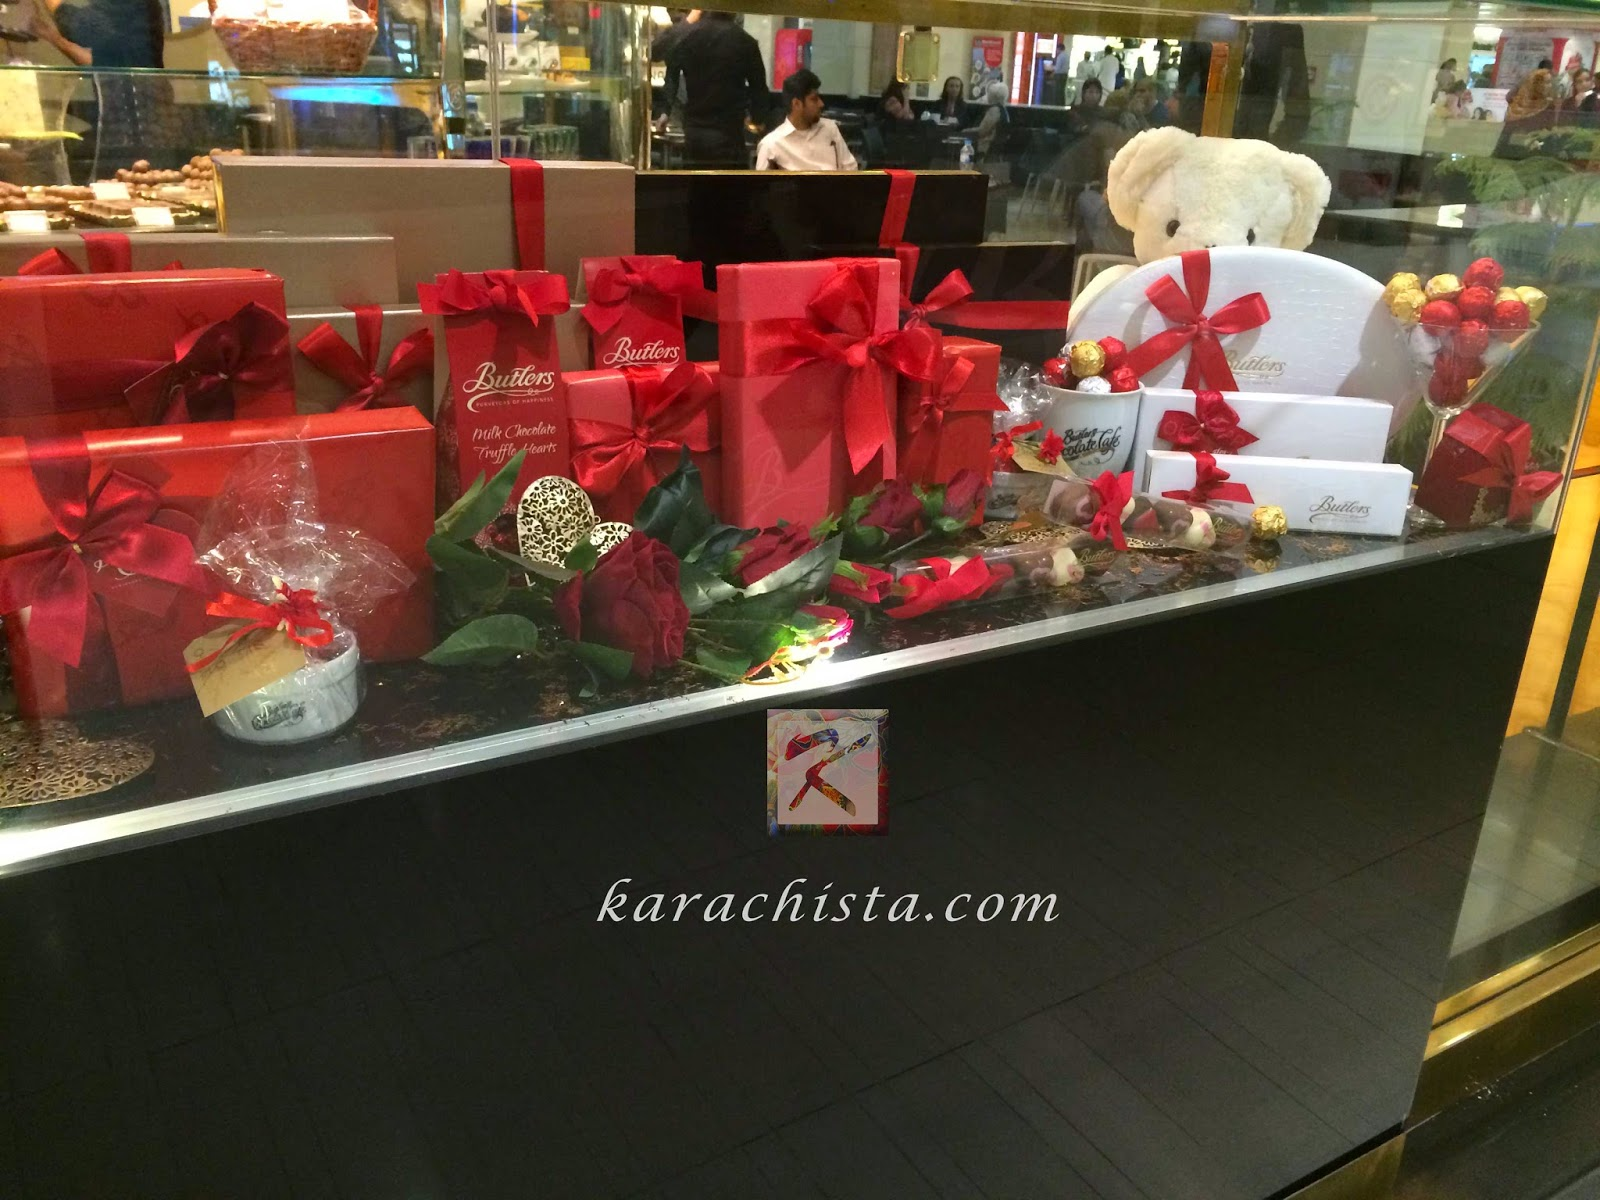 Valentine's gifts for him and her from around Karachi